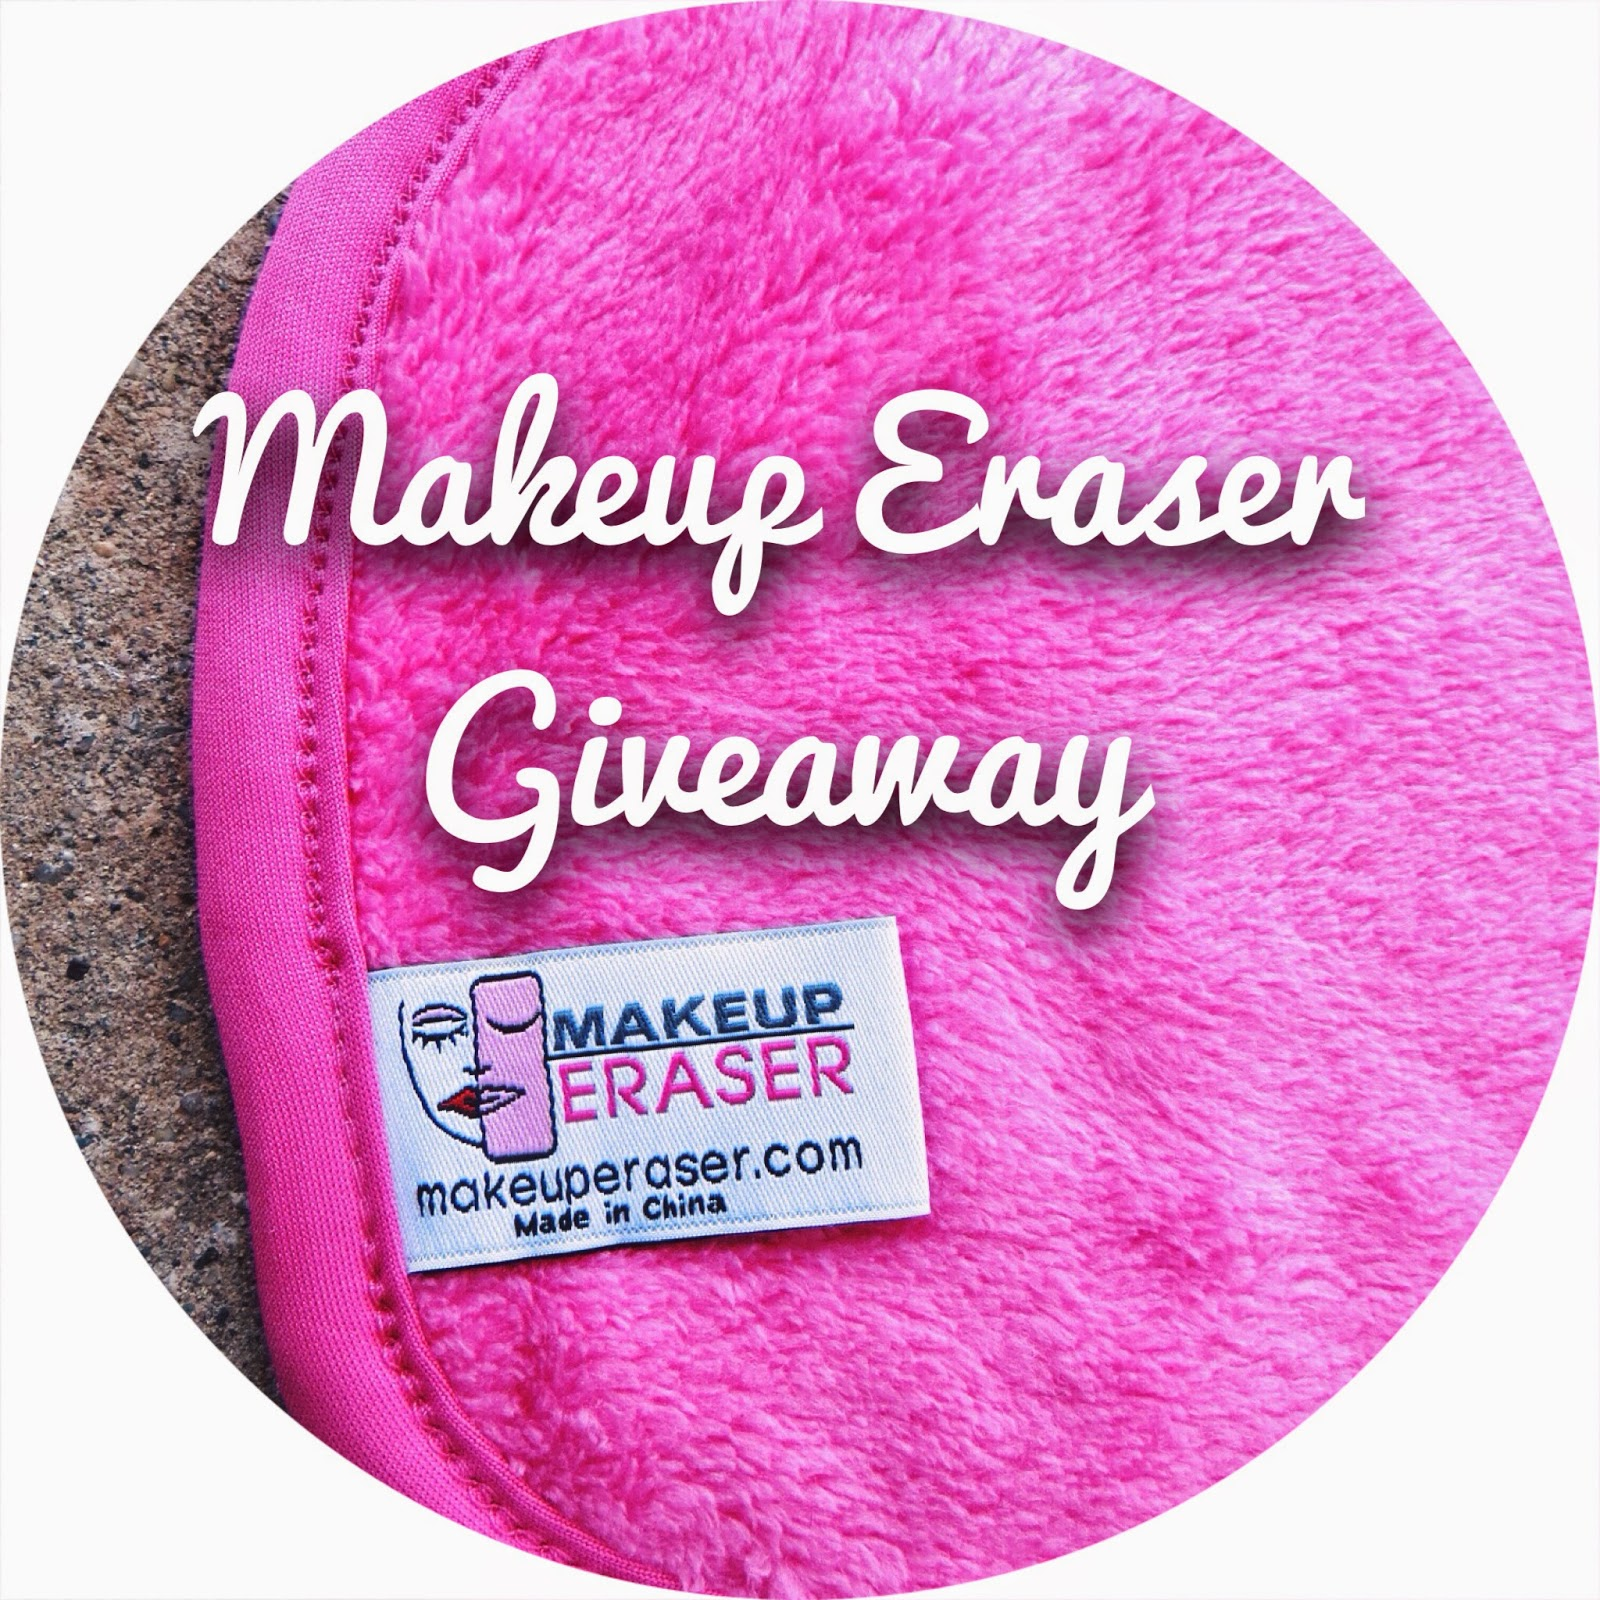 makeup eraser giveaway, clean my face, younique giveaway, makeup remover giveaway, beauty giveaway, sweepstakes, contest, win it, freebie, freebie friday